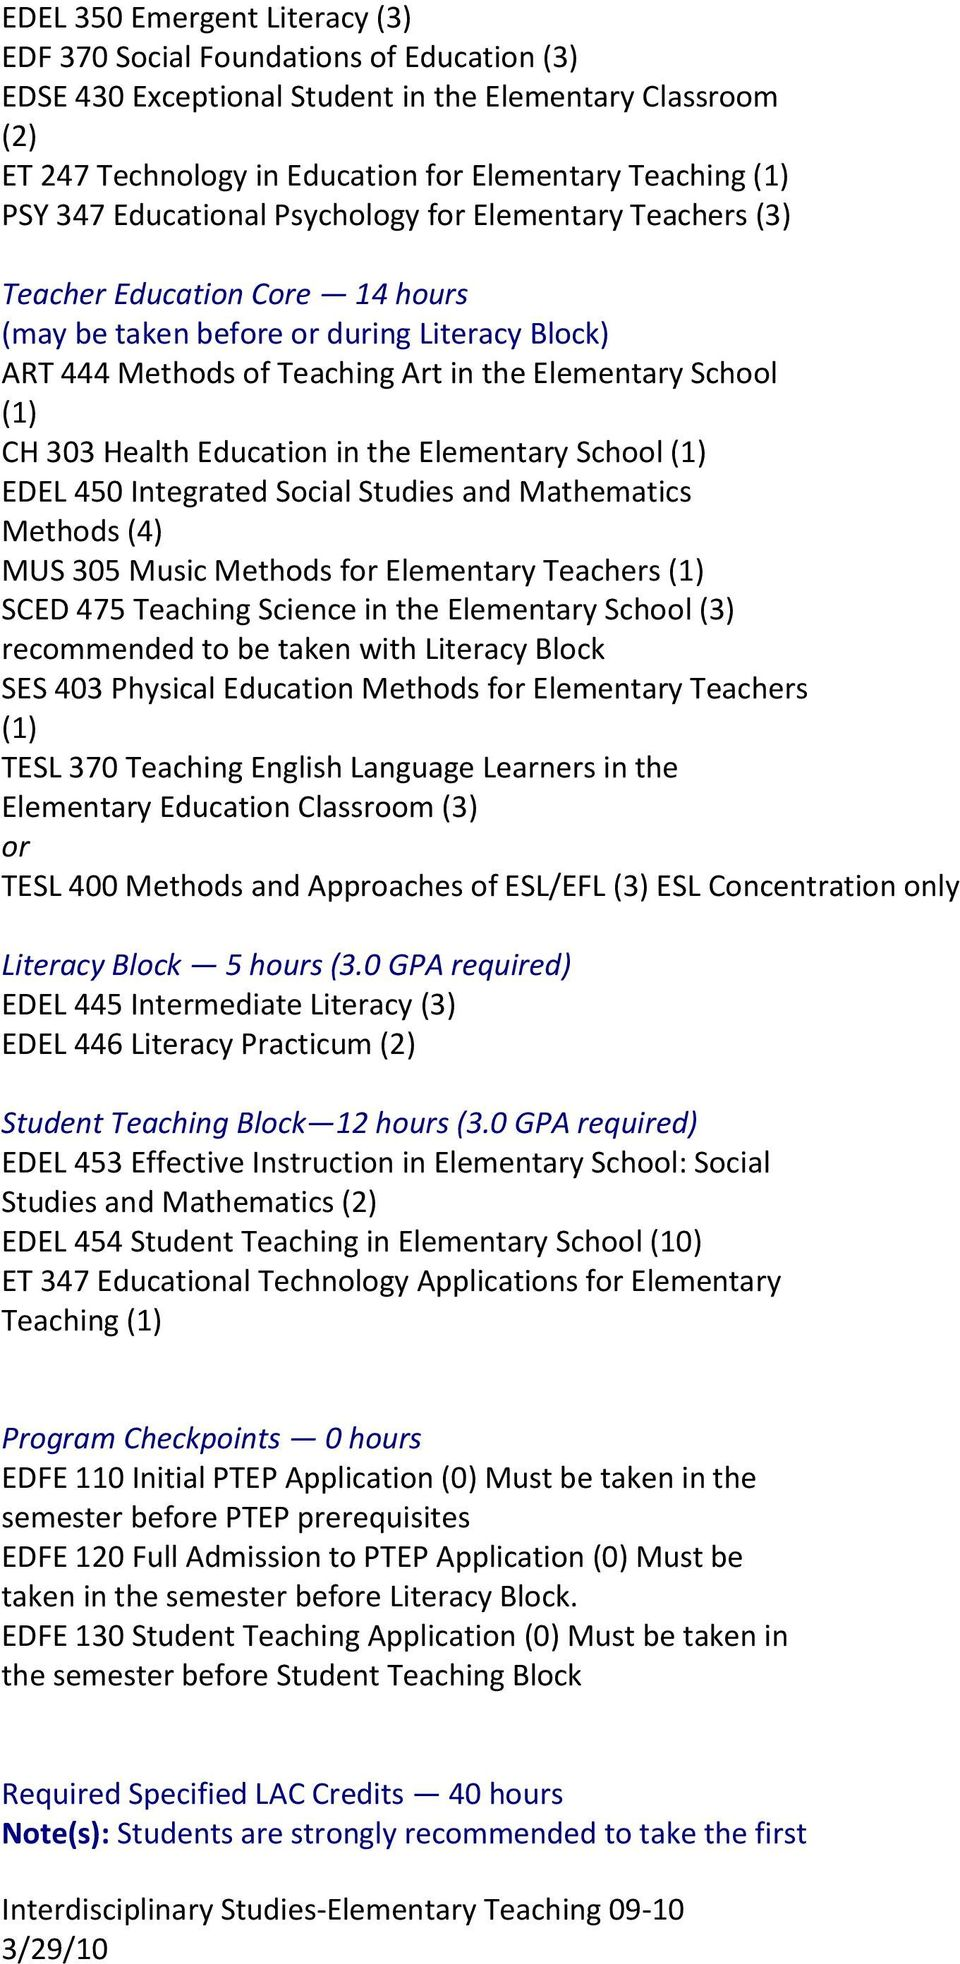 303 Health Education in the Elementary School (1) EDEL 450 Integrated Social Studies and Mathematics Methods (4) MUS 305 Music Methods for Elementary Teachers (1) SCED 475 Teaching Science in the